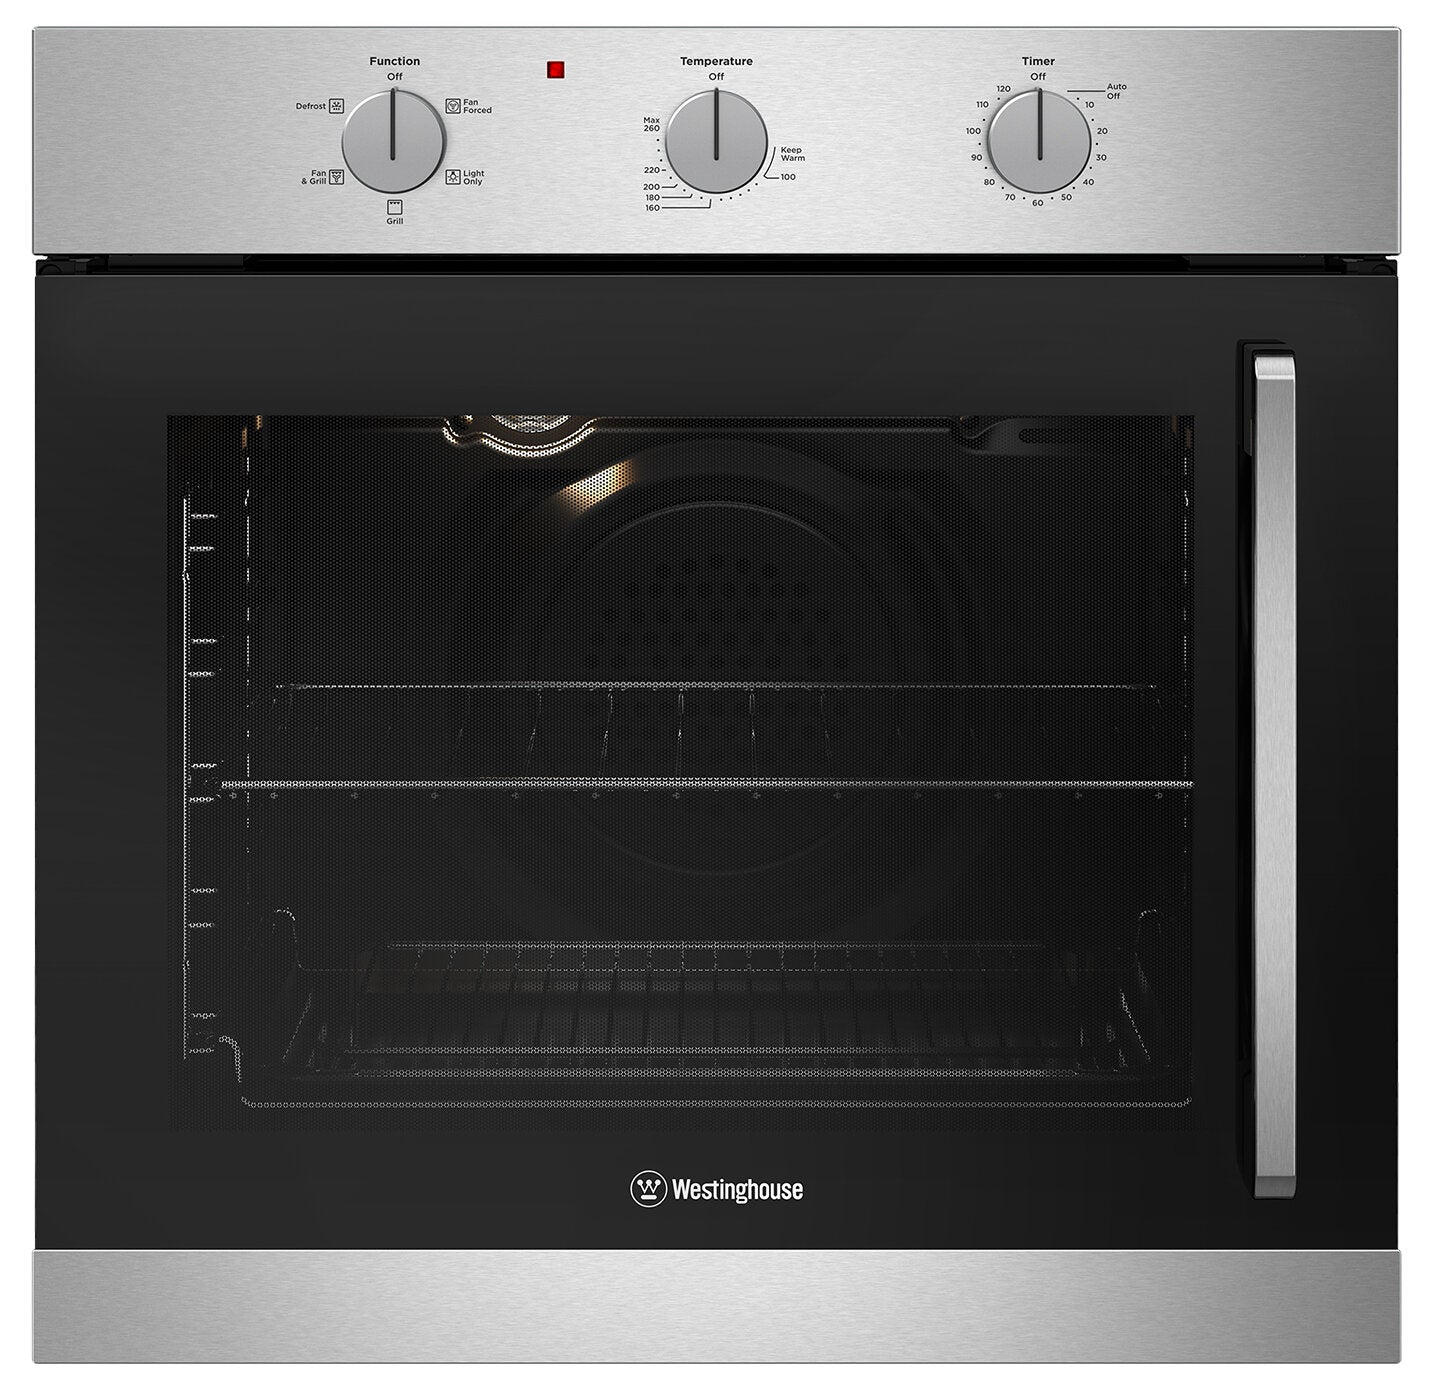 Westinghouse WVES613SC-L 600mm Stainless Steel Multifunction Oven with Left Side